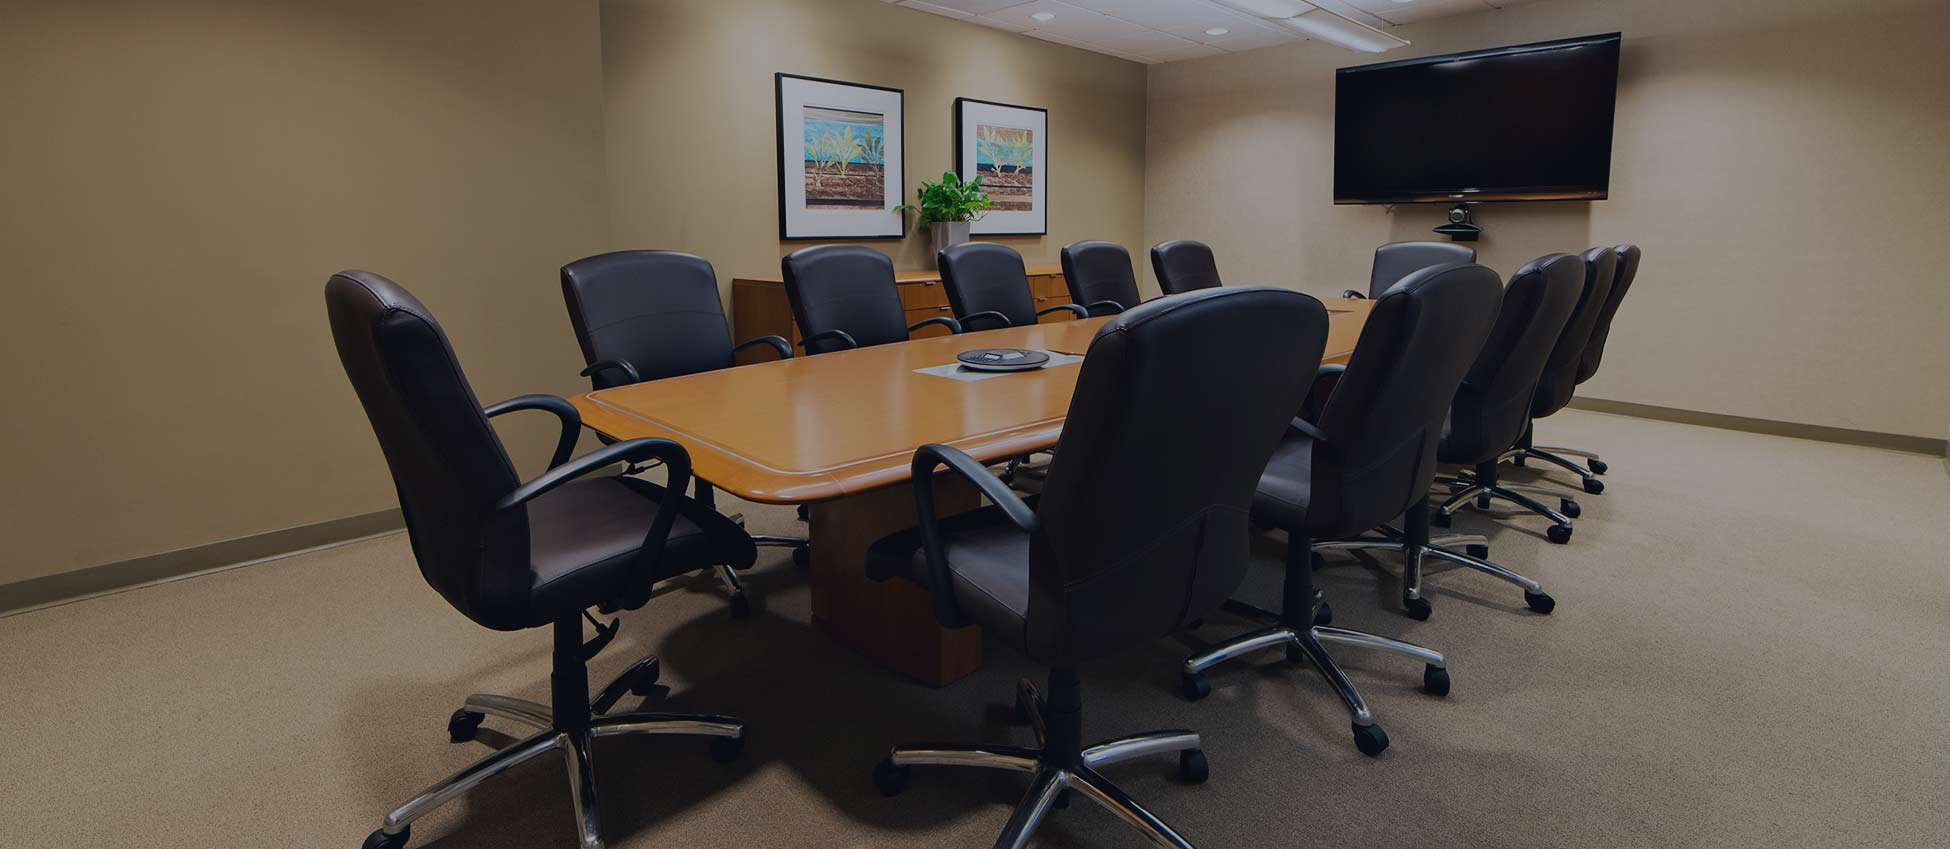 pacific-workplaces-walnut-creek-office-space-boardroom